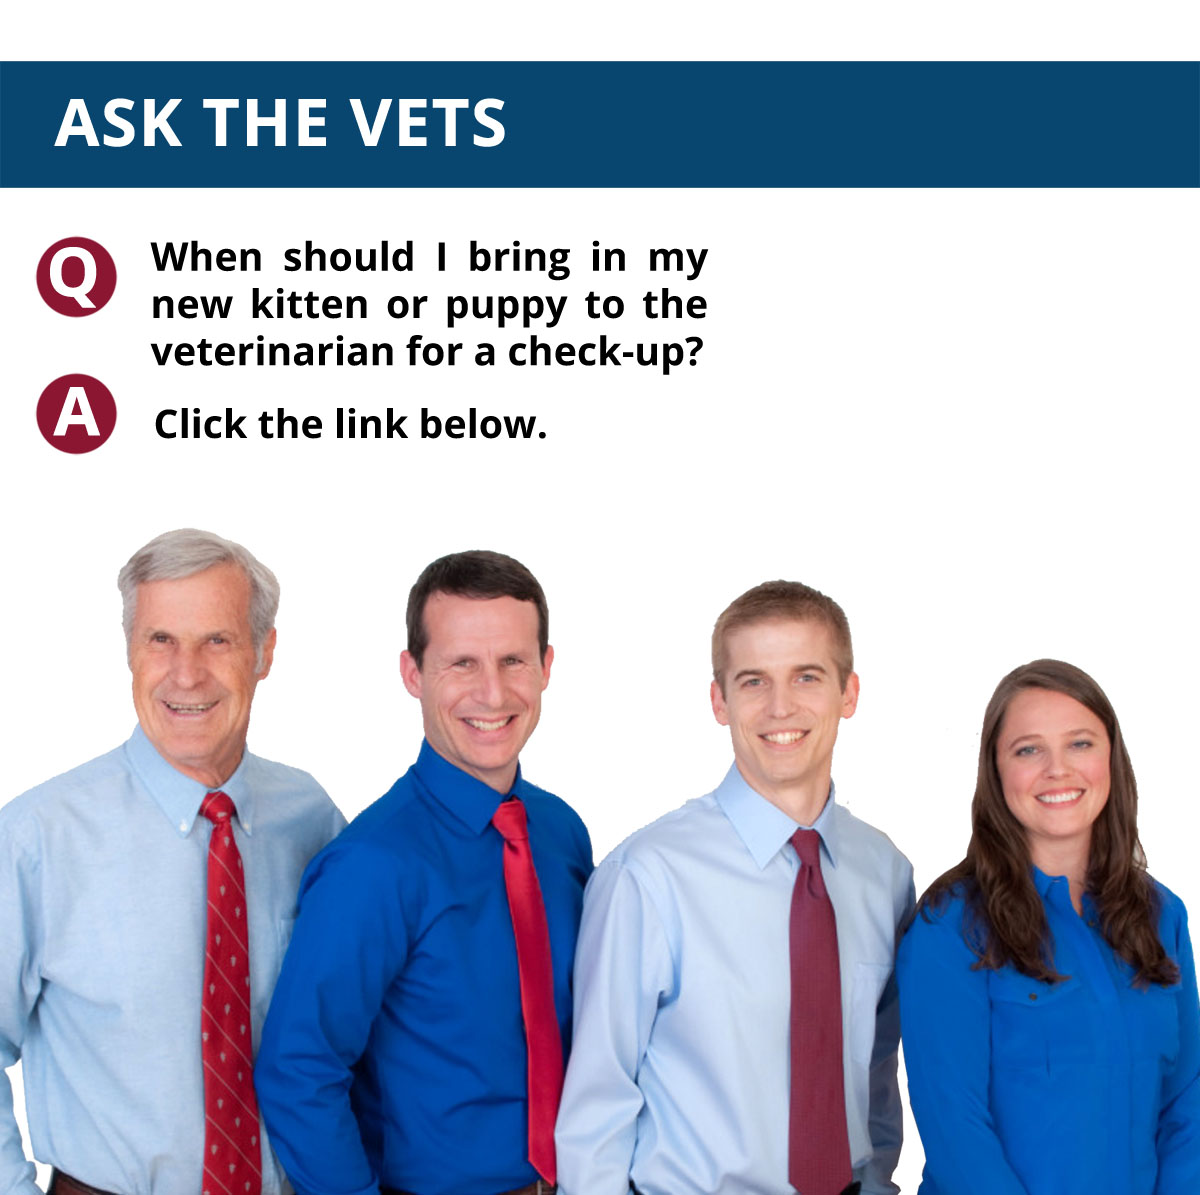 Ask The Vets at West Eugene Animal Hospital